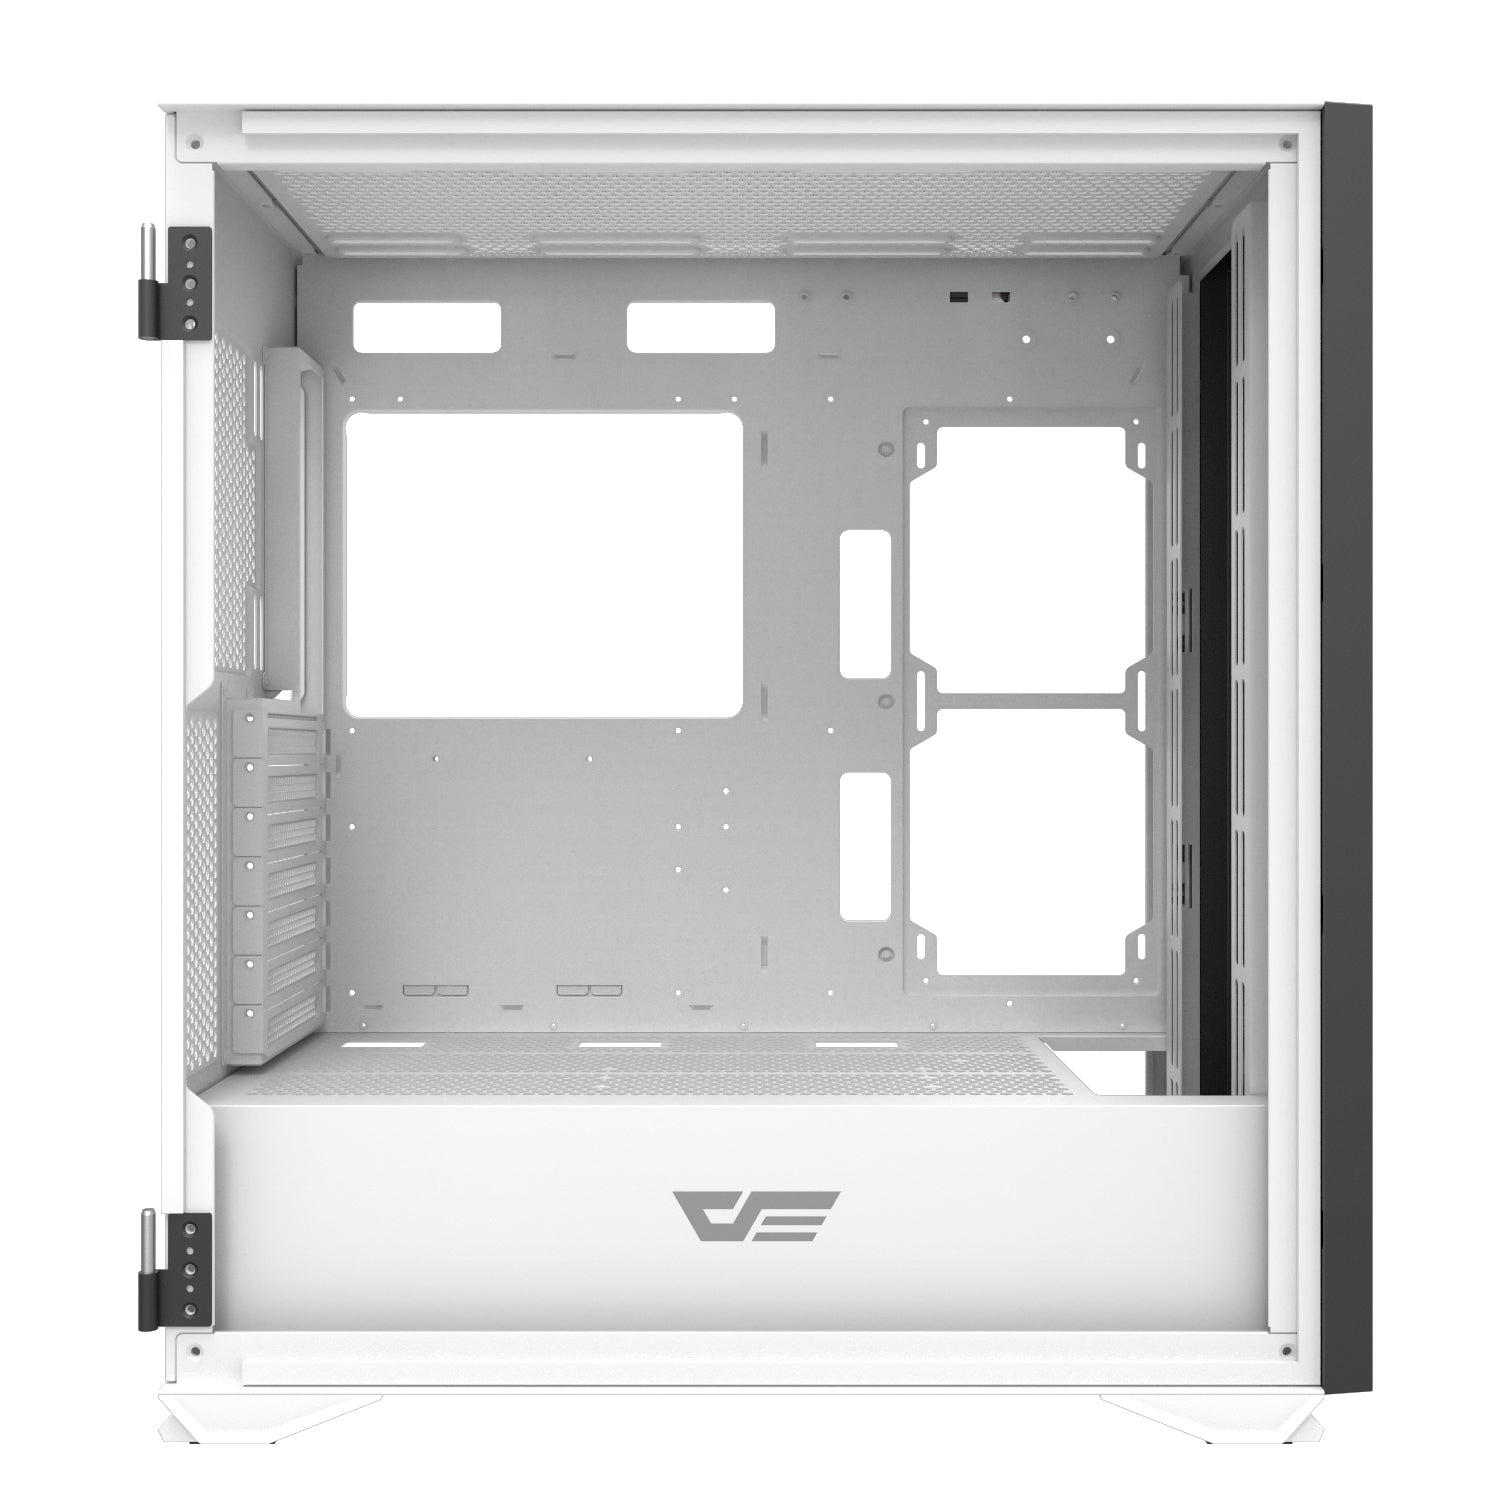 darkFlash DLX21 MESH White ATX Computer Case with Graphics card holder & Mesh Front Panel